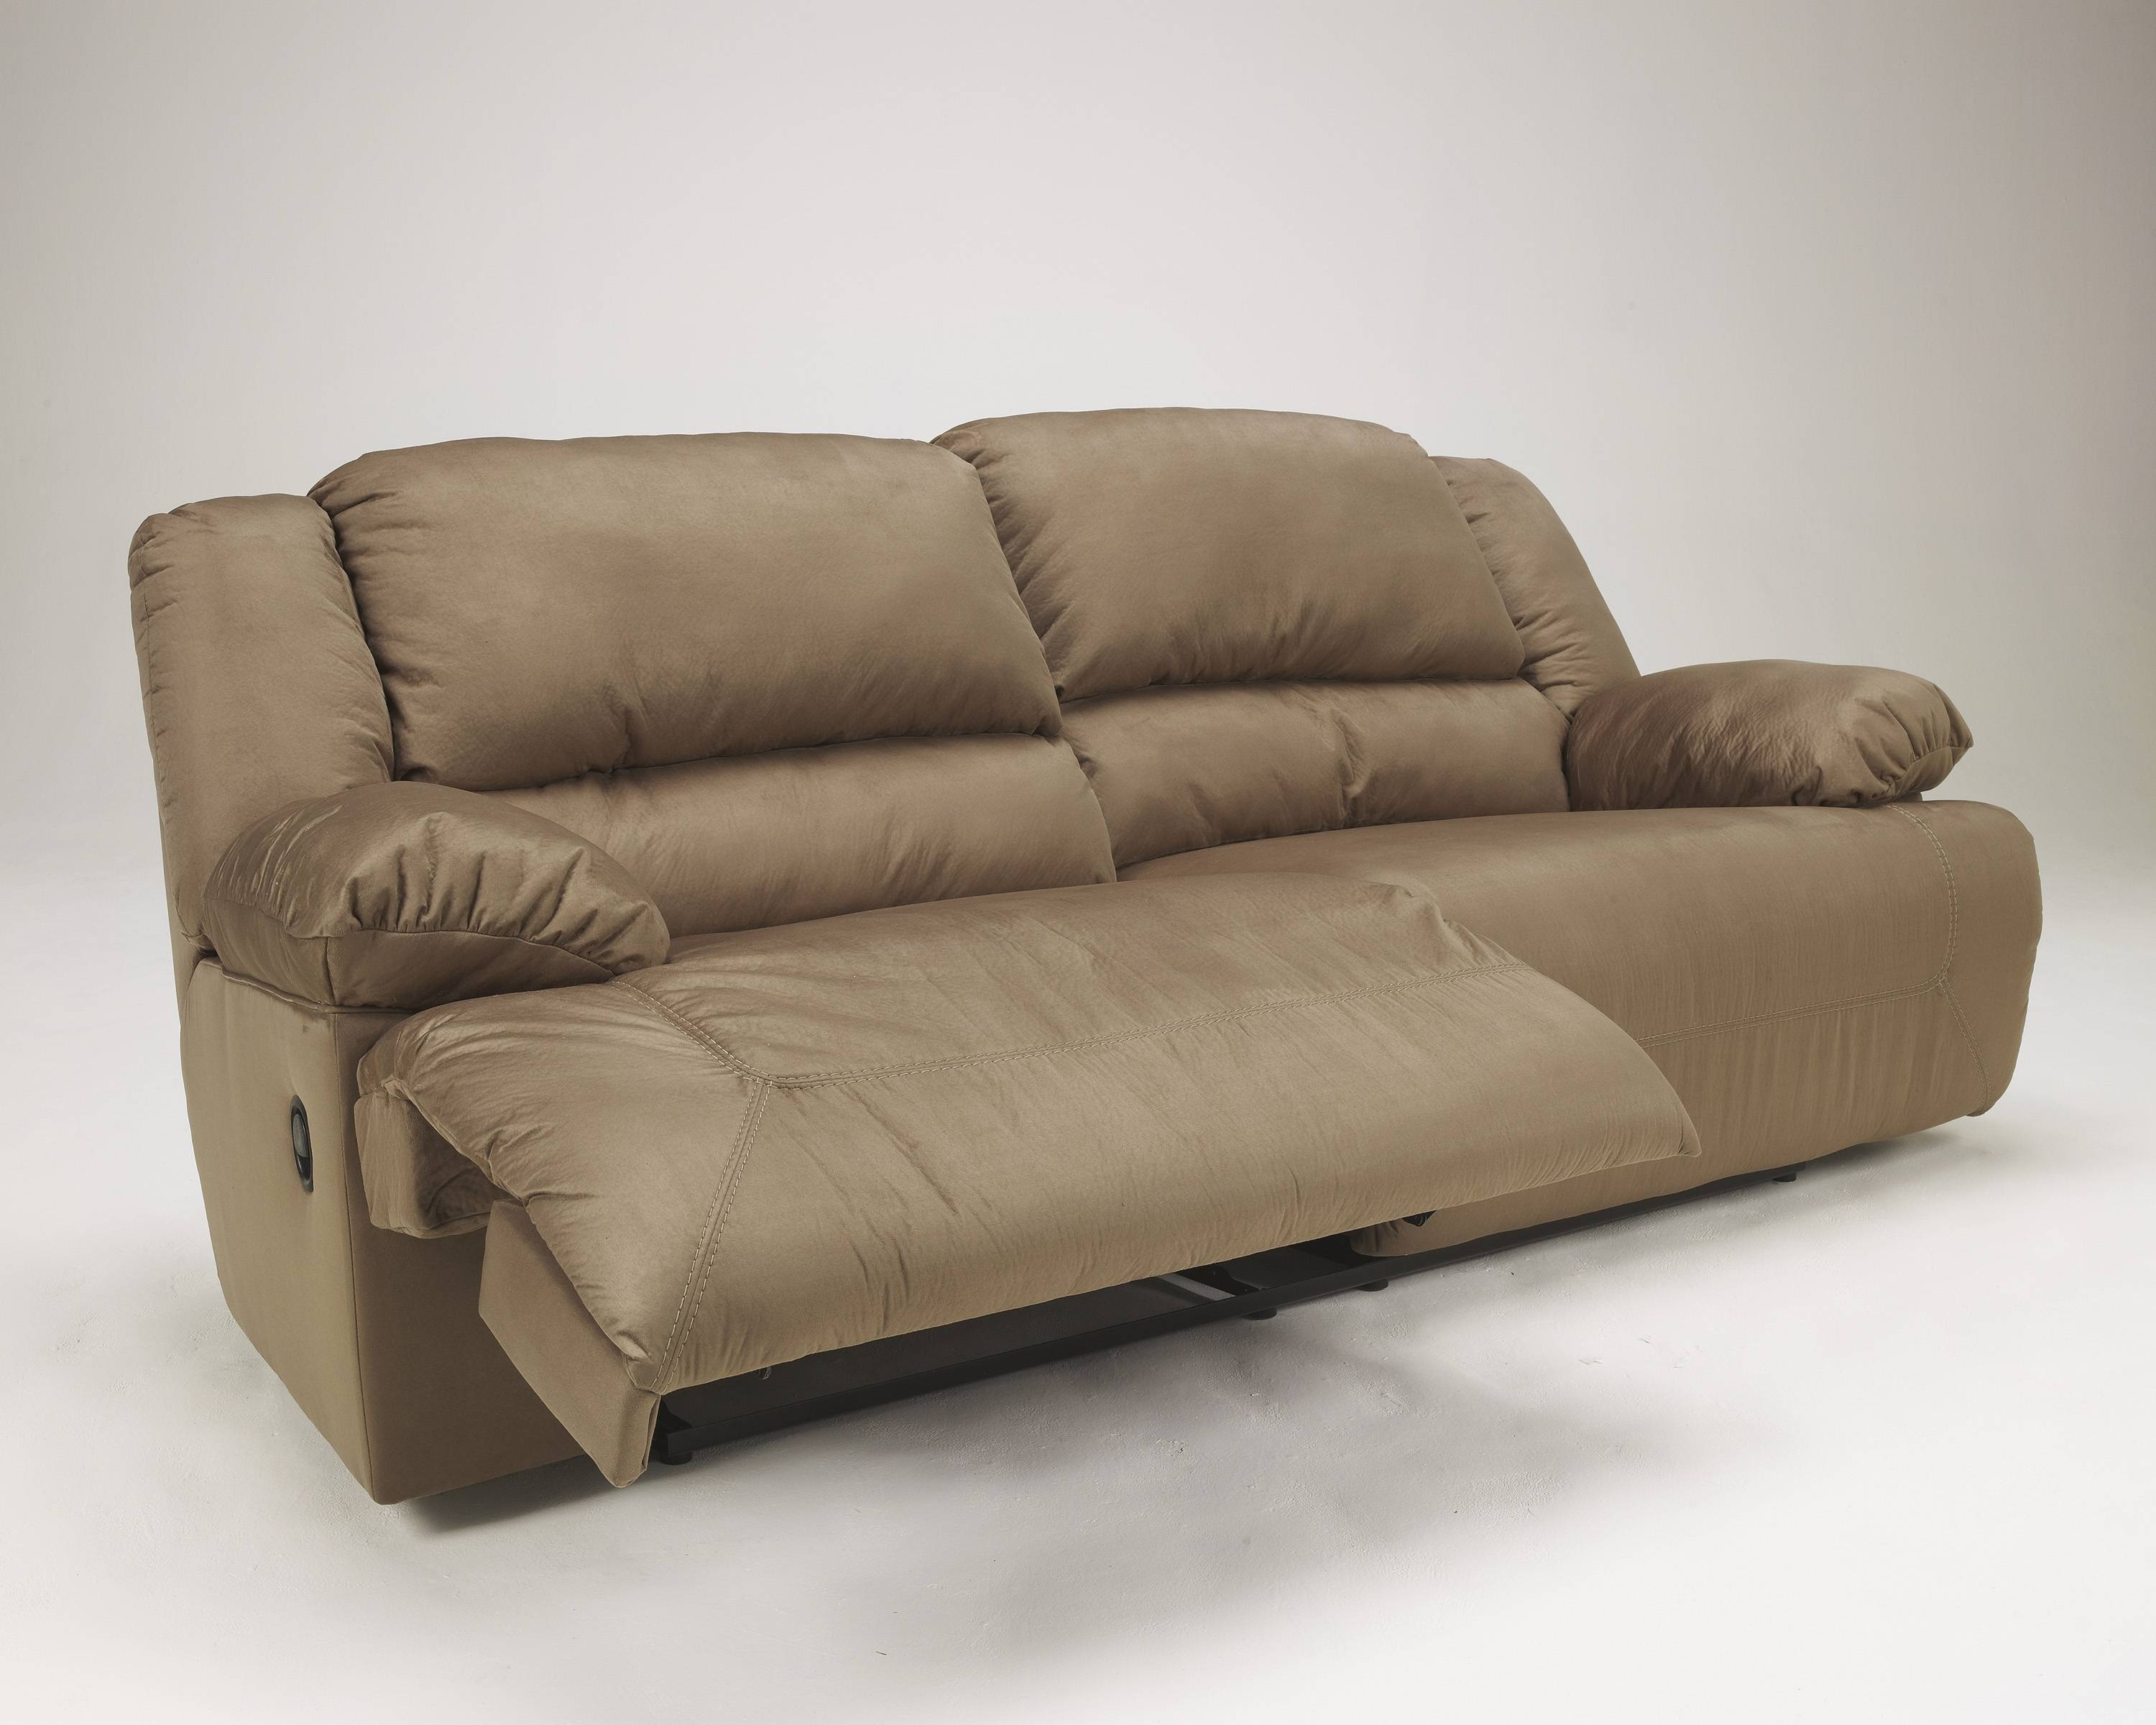 Hogan Contemporary Mocha 2- Seat Reclining Sofa | Living Rooms inside 2 Seat Recliner Sofas (Image 12 of 30)